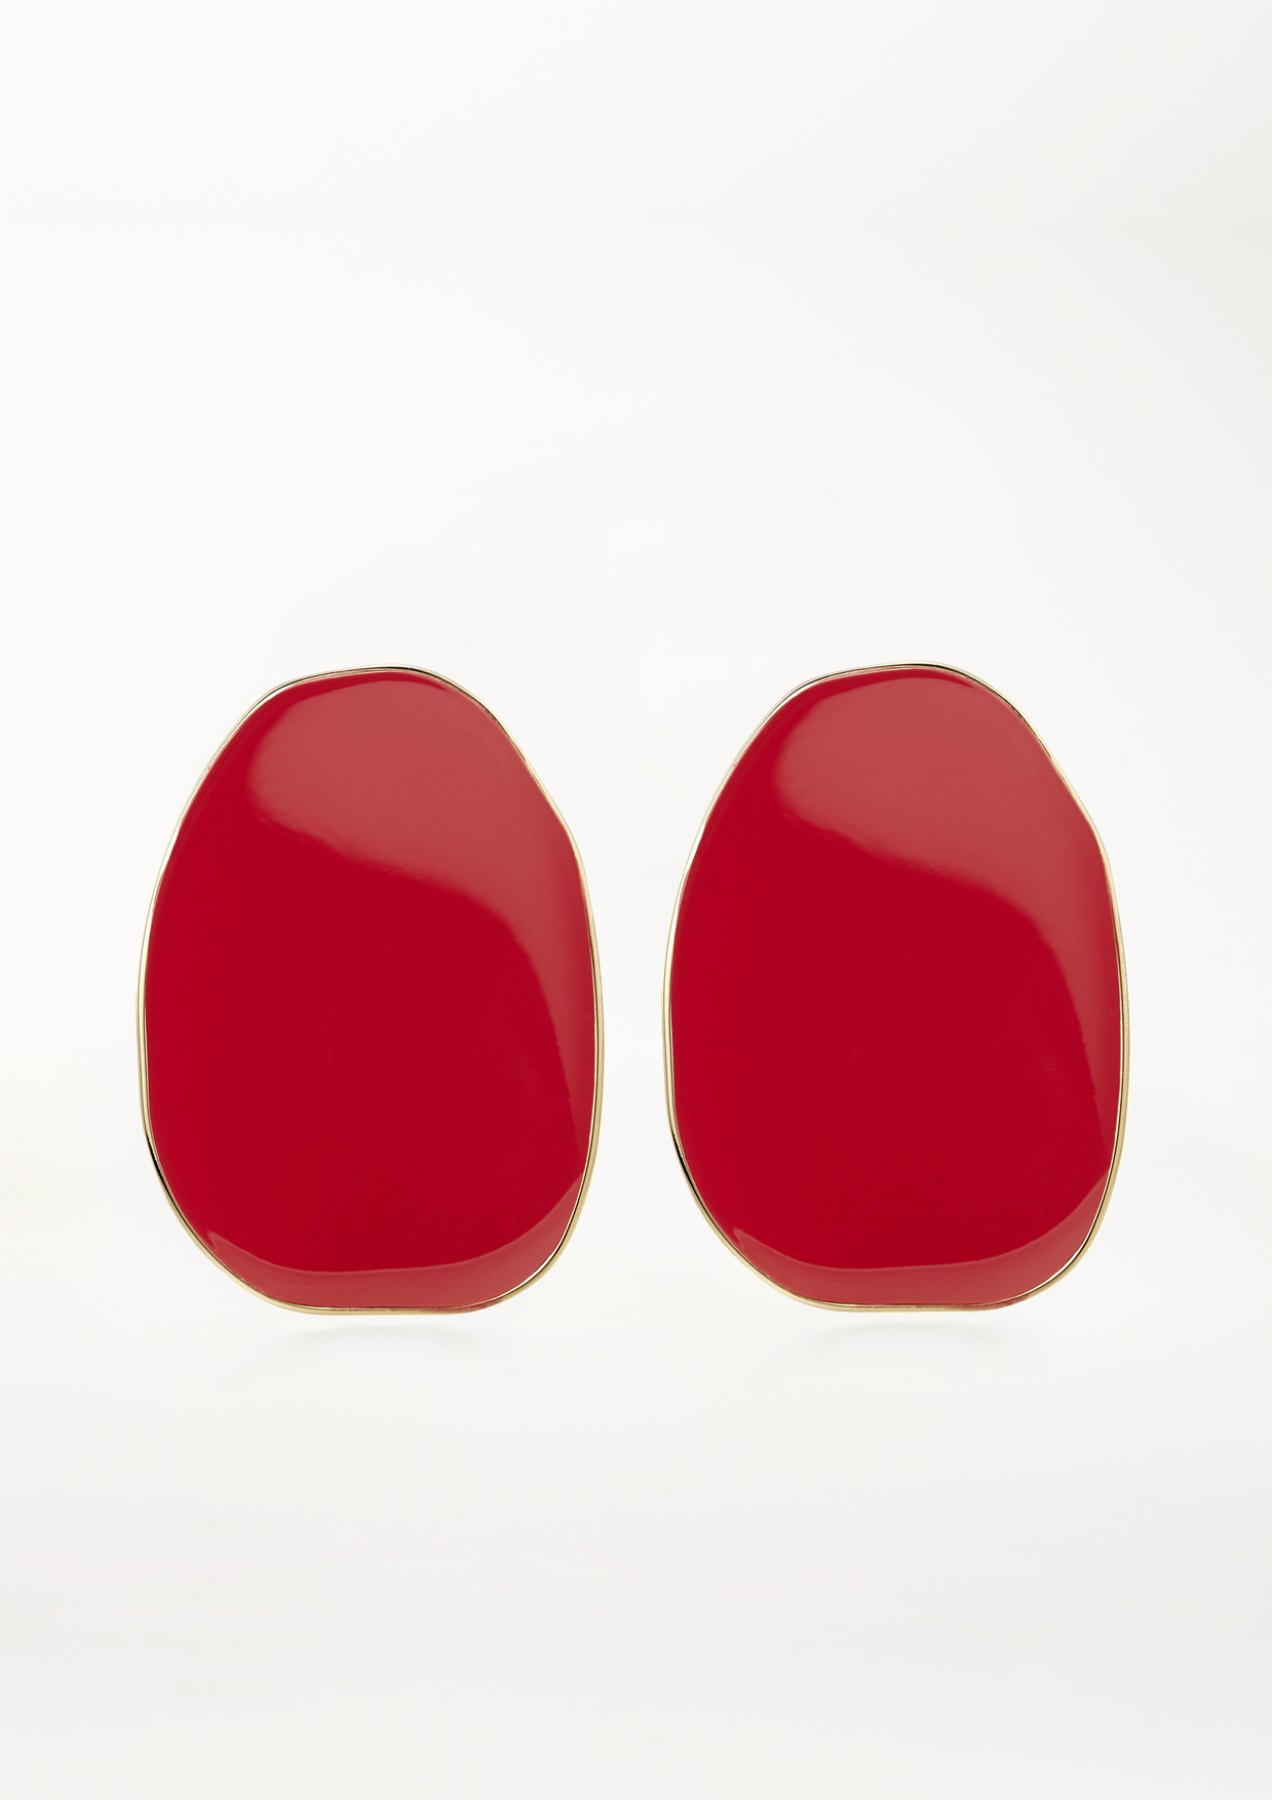 xenia bous jewellery coloured stone 01 earrings feuerrot red